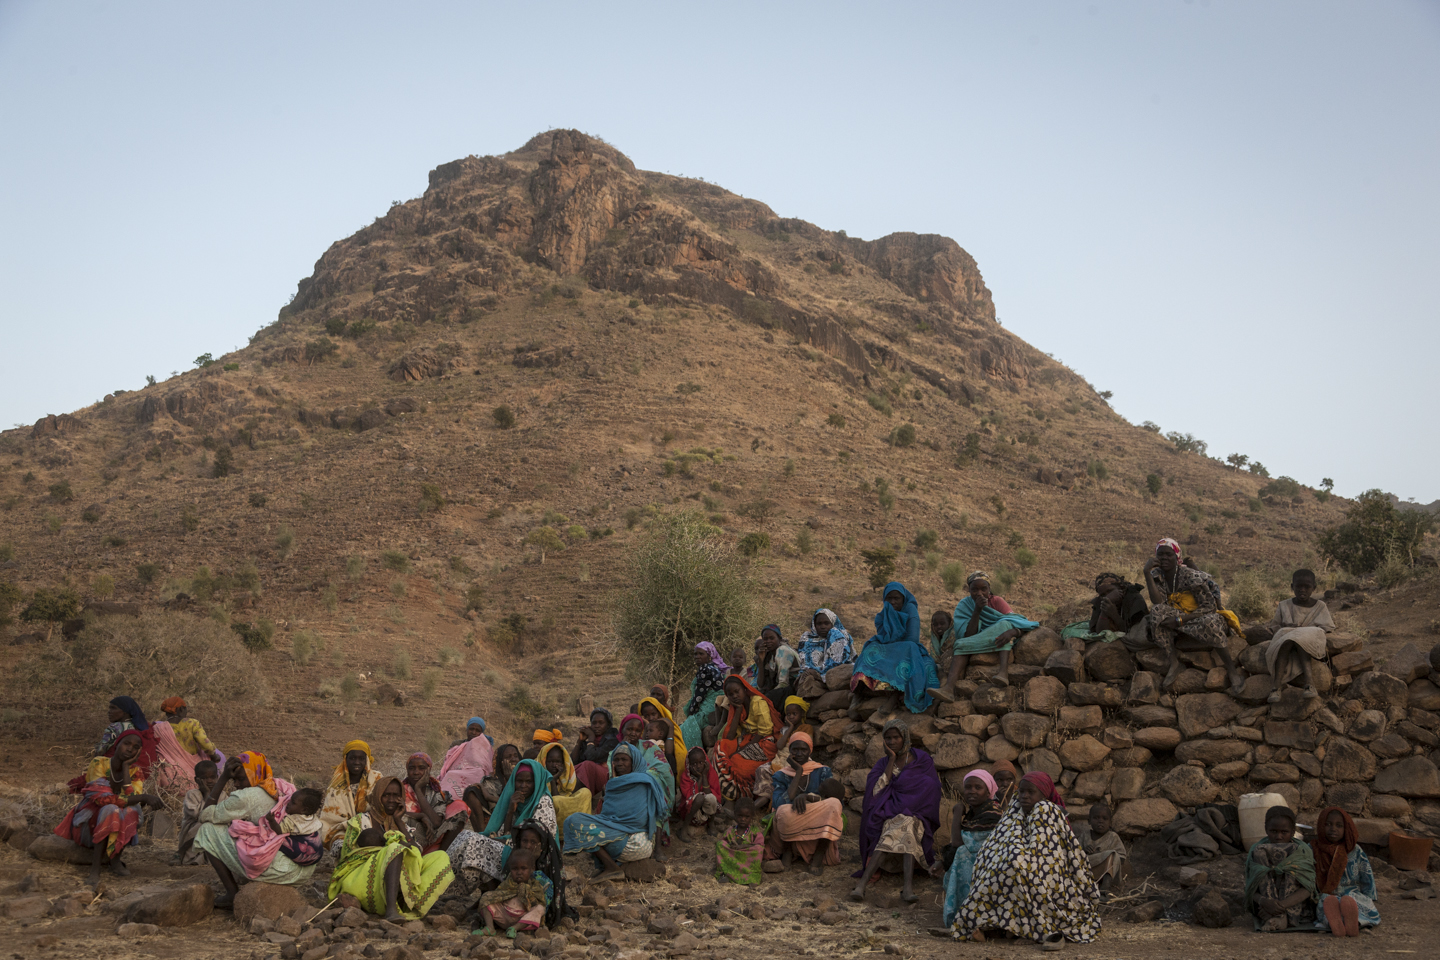 Women and children that have been displaced from the town of Golo after it was attacked by government forces and their allied militias, sit on a mountain top outside of Kome in Central Darfur, Sudan, February 28, 2015.